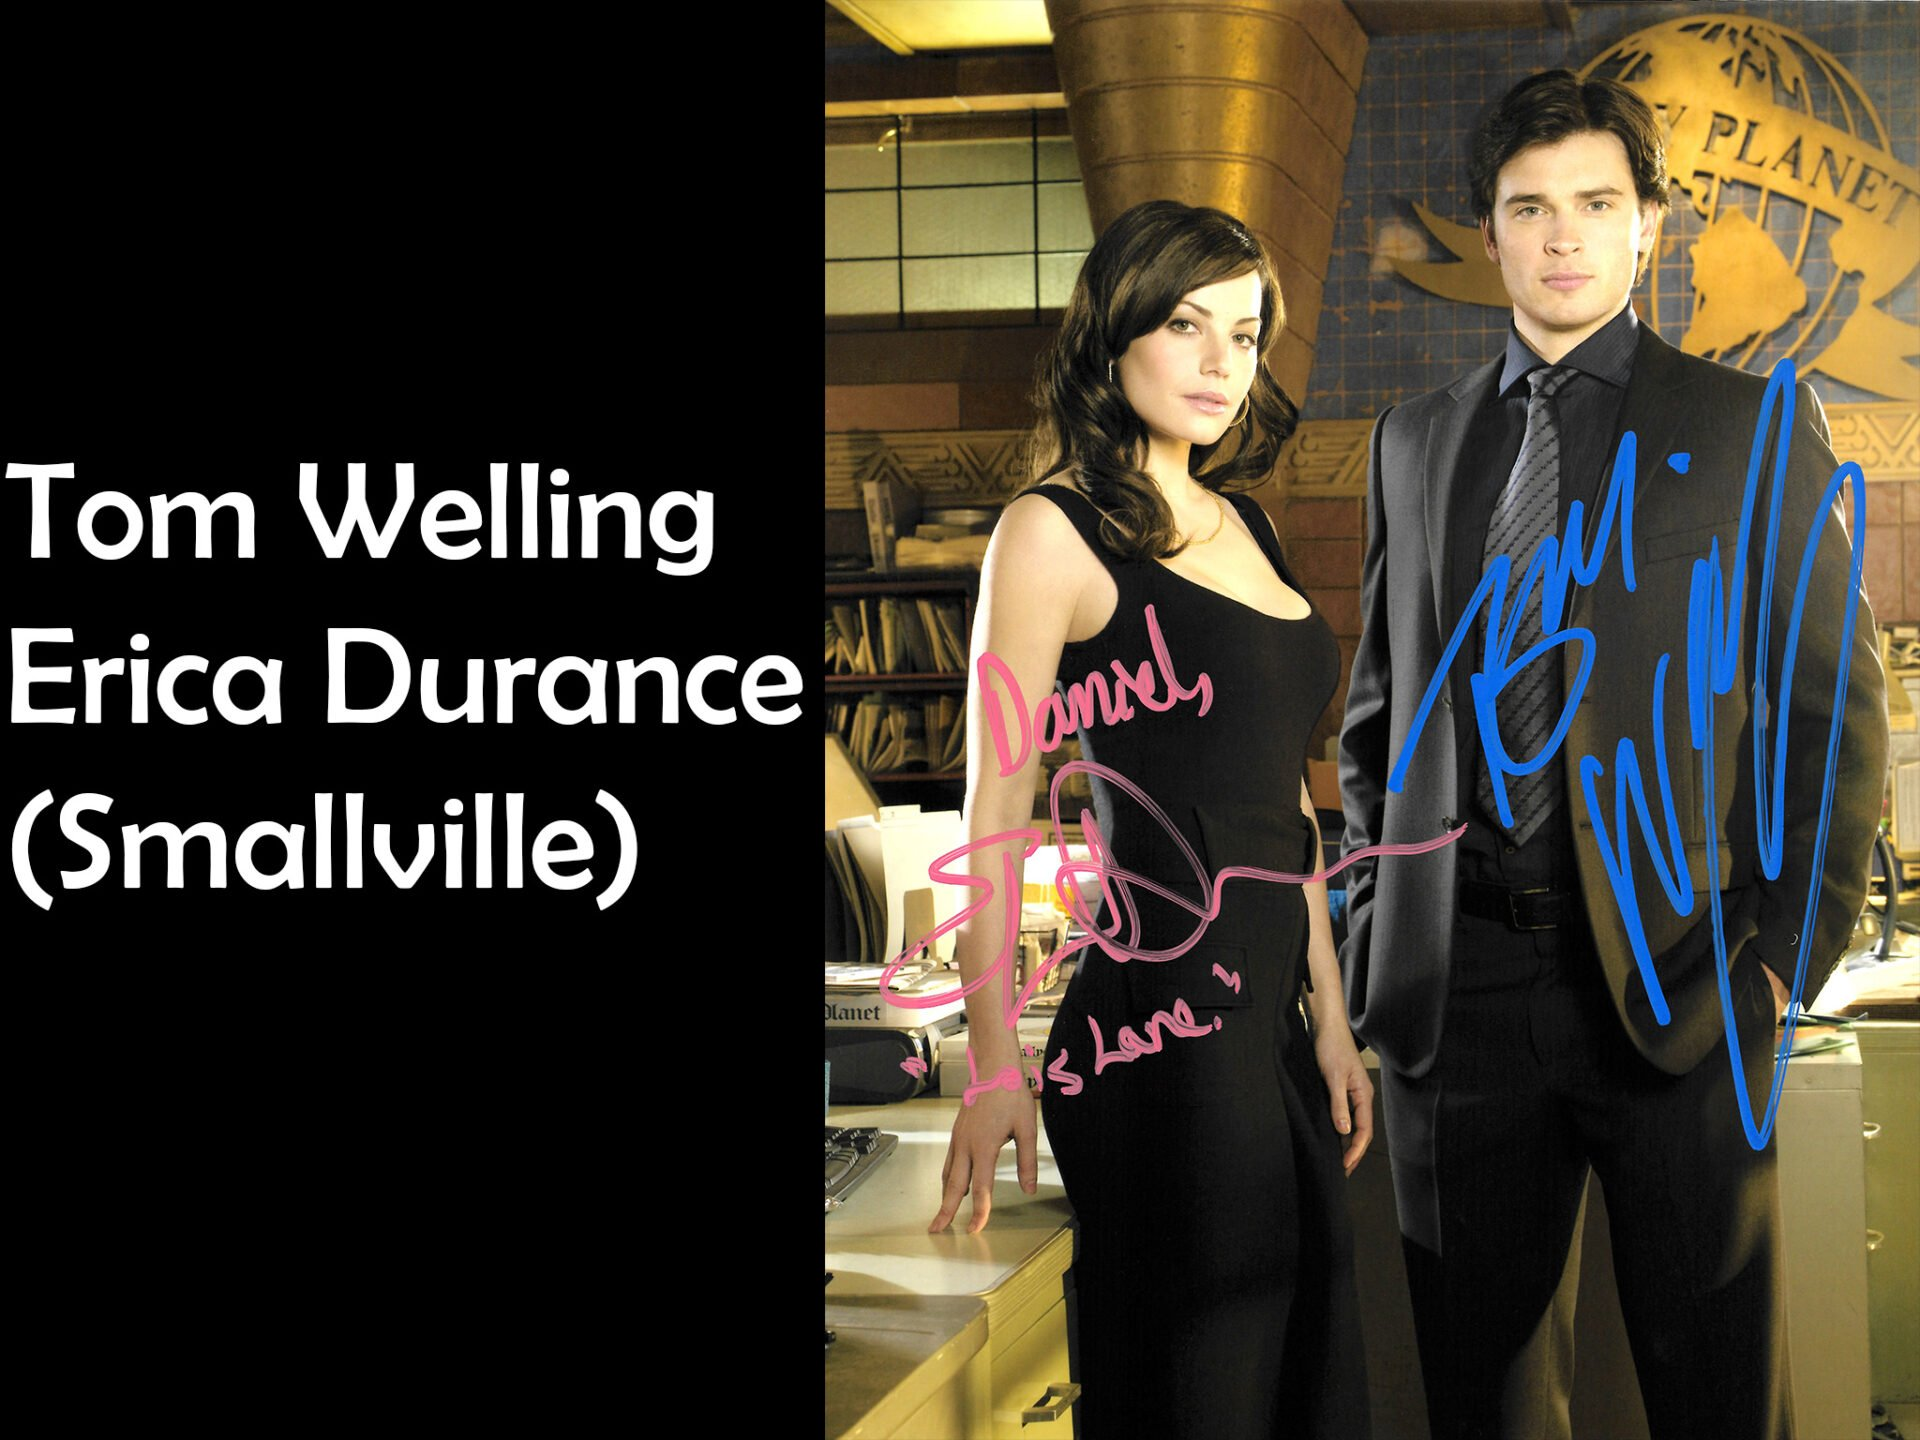 Signed photo of Tom Welling and Erica Durance